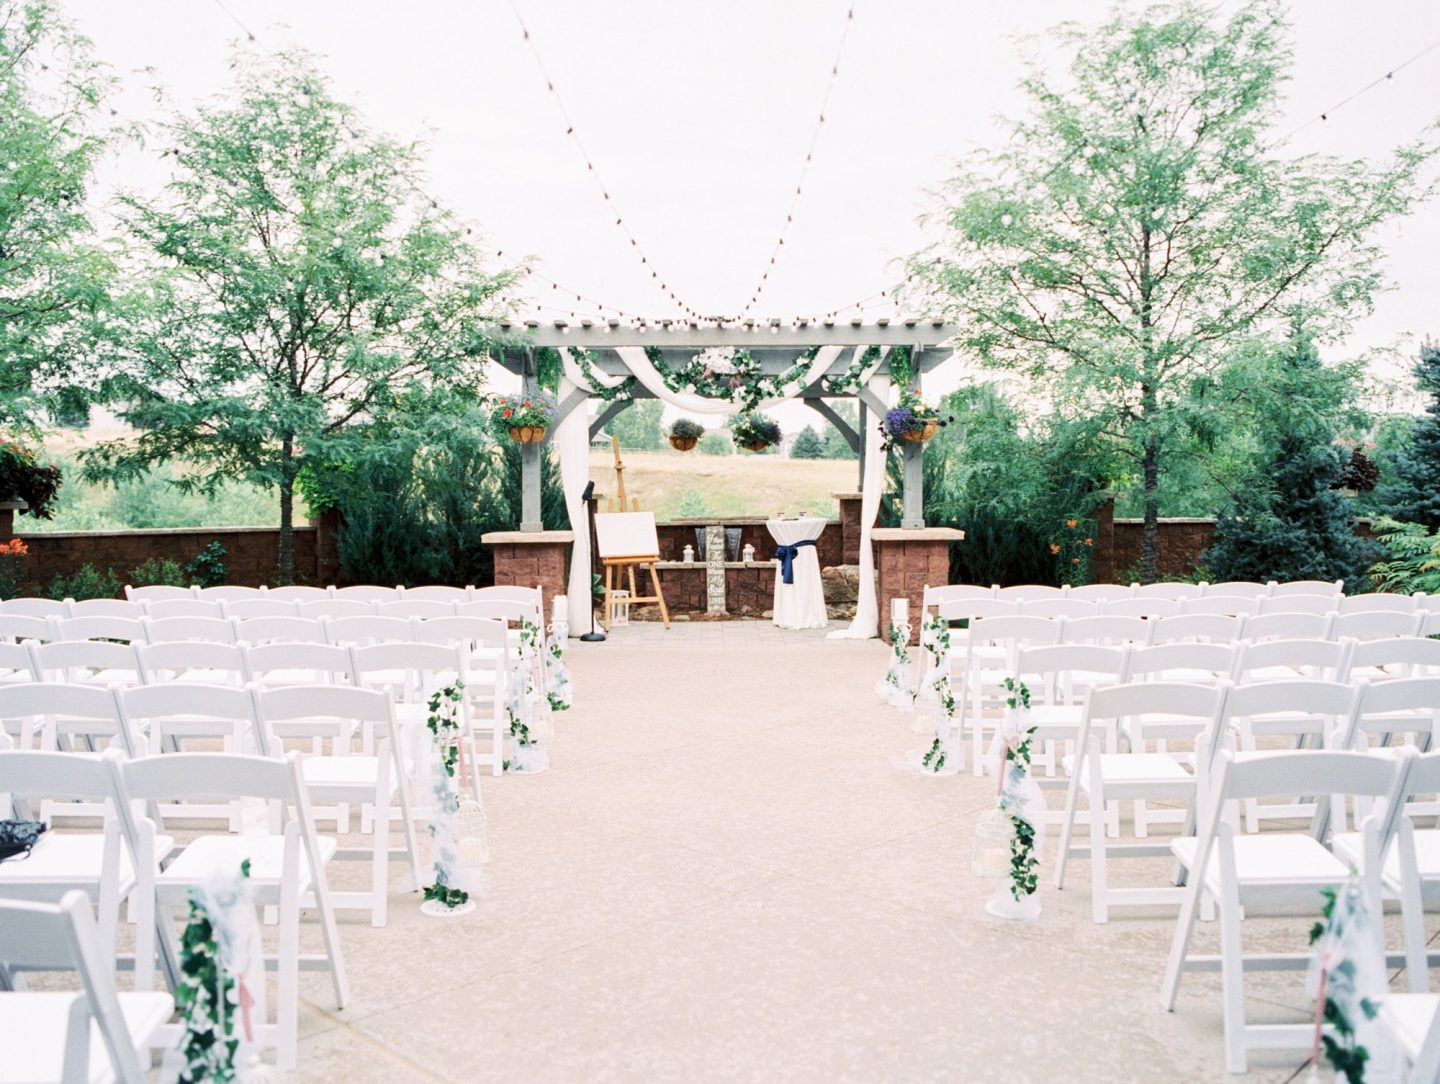 PACE Center Patio decorated for Wedding ceremony in Parker, CO.